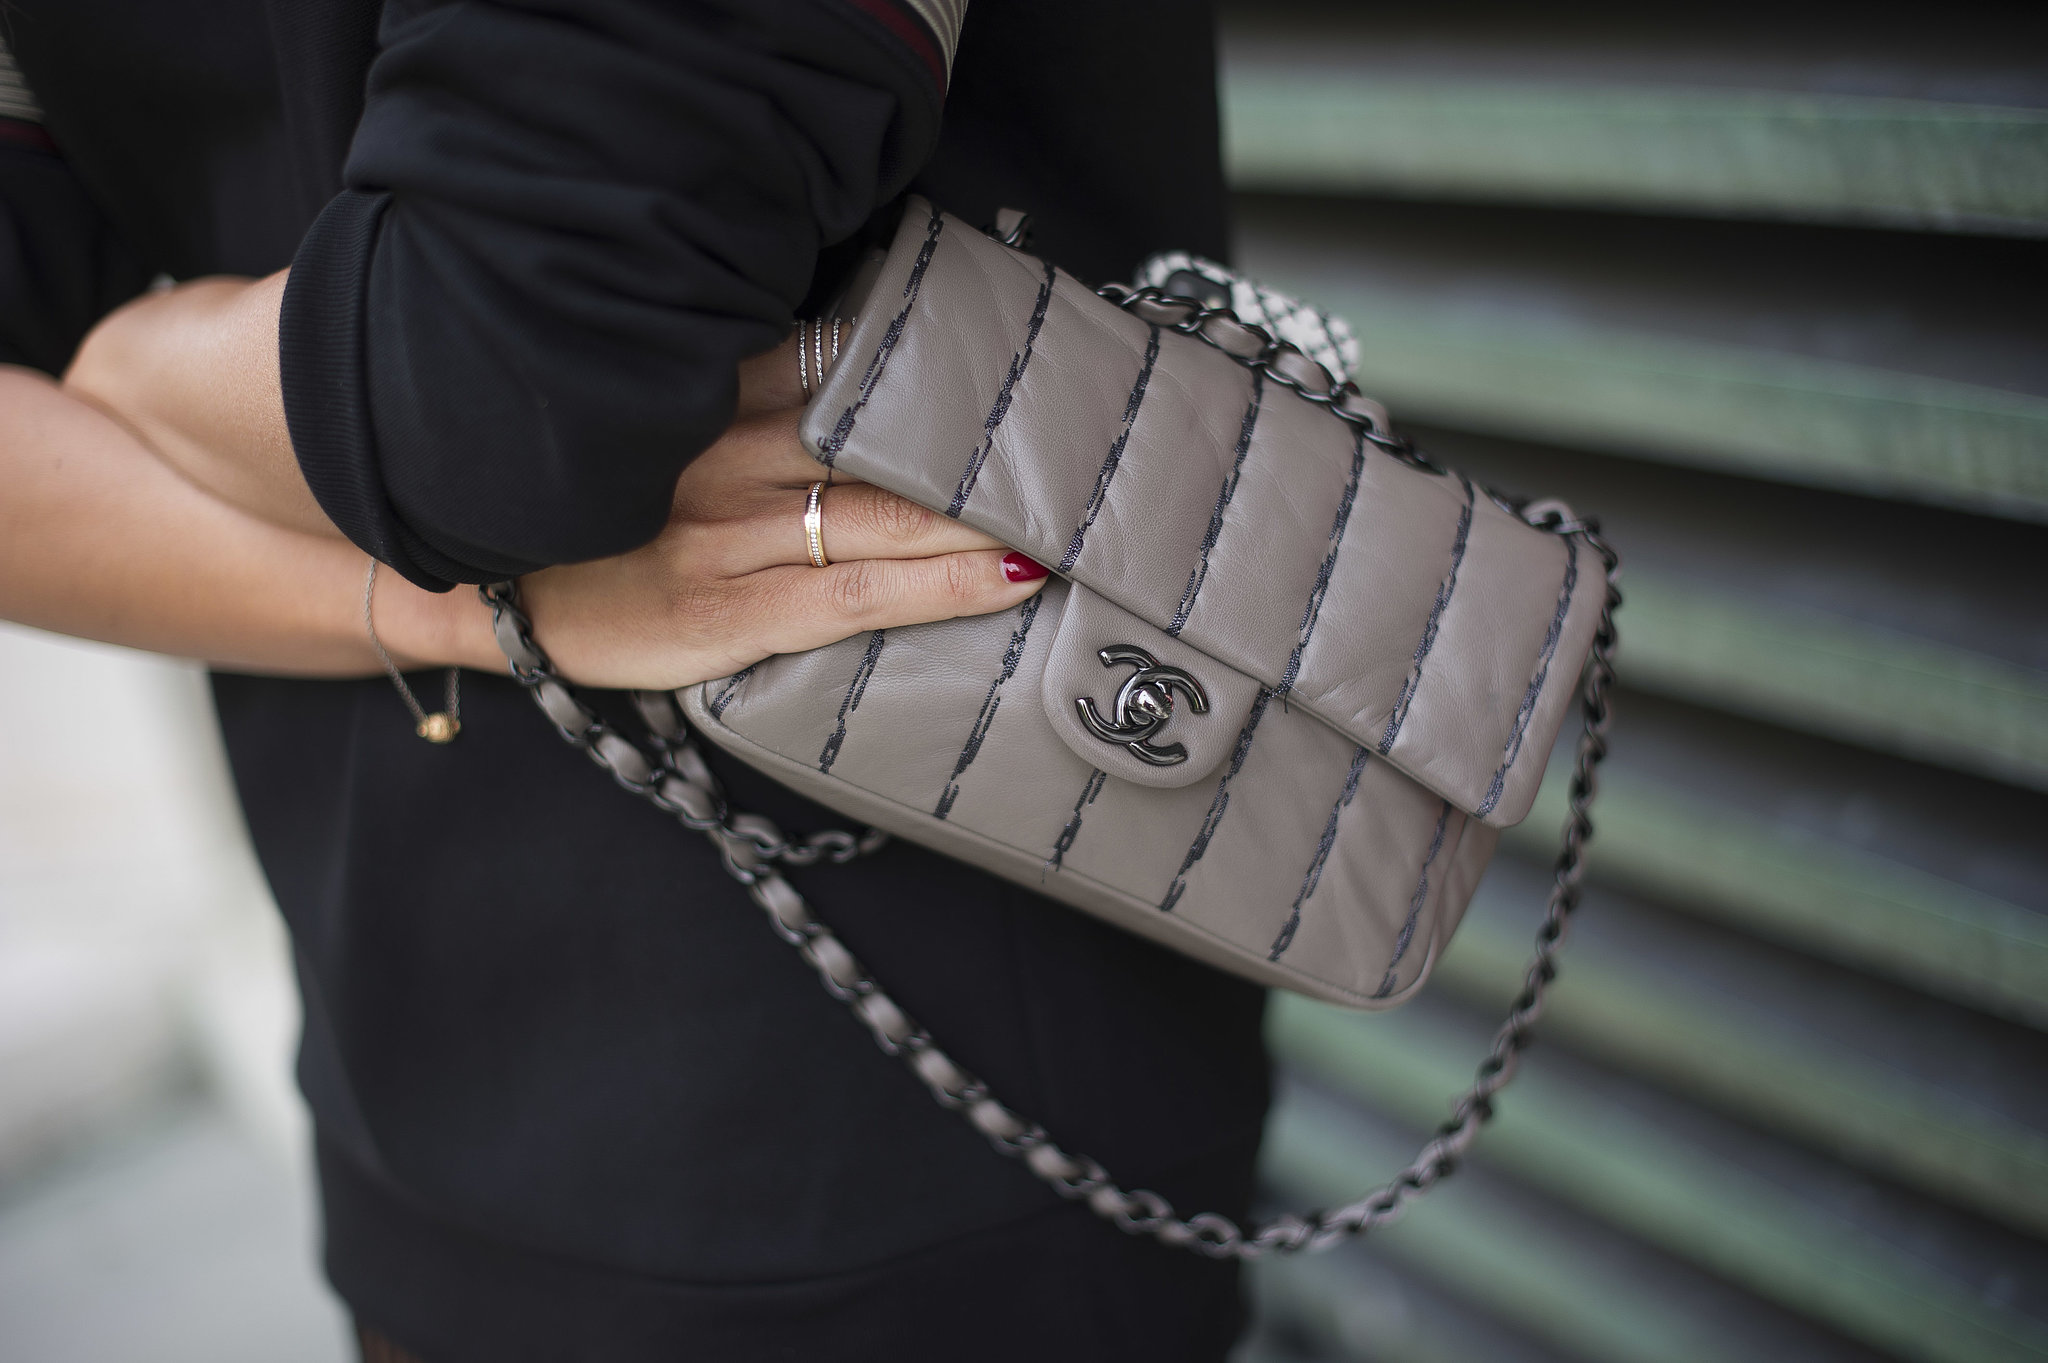 Classic Chanel in a perfect Fall hue.